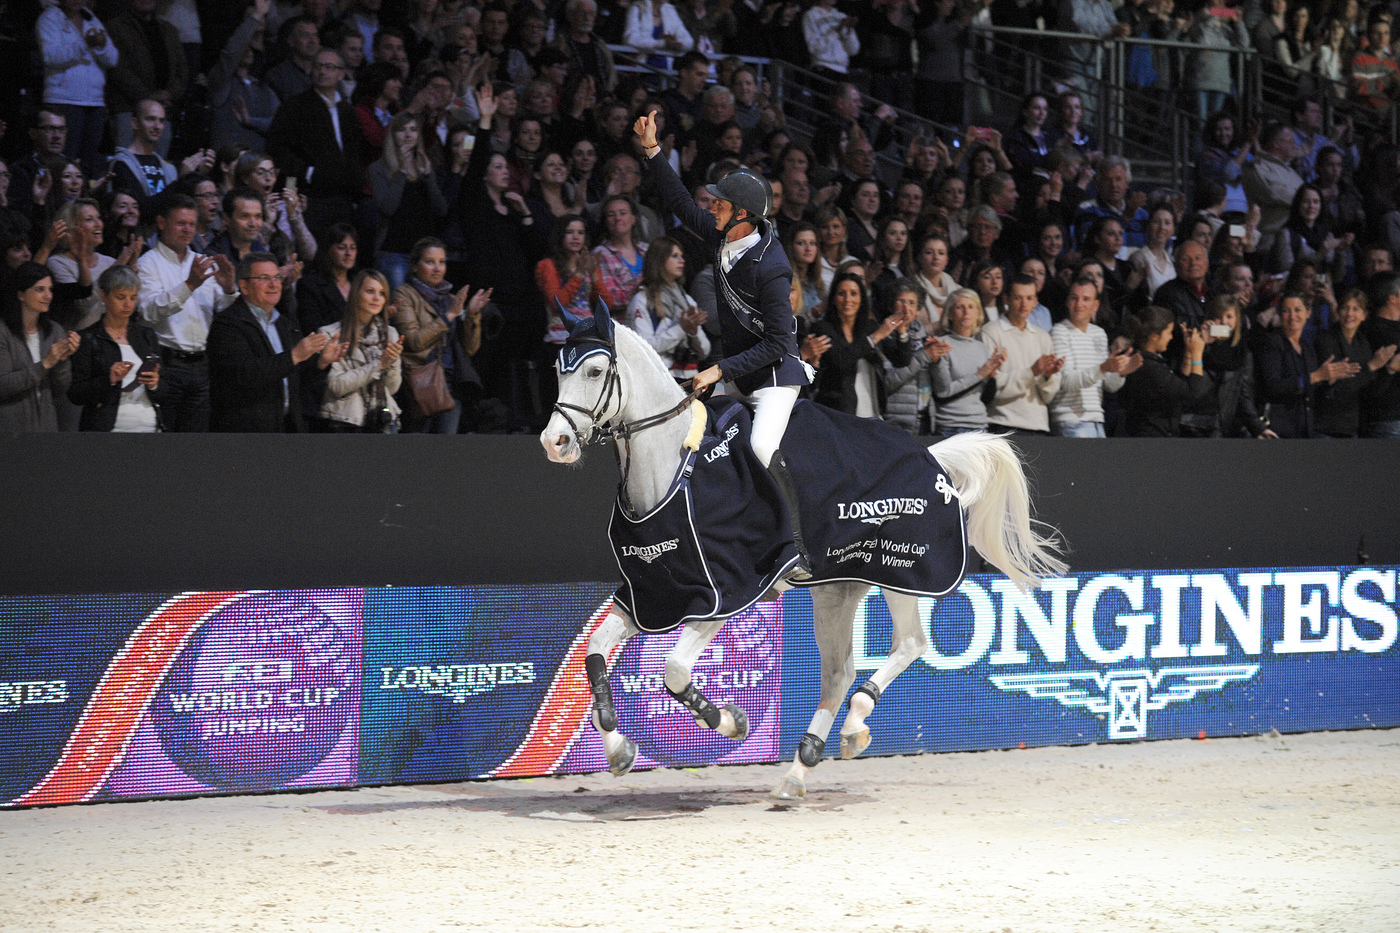 Longines Show Jumping Event: The Longines FEI World Cup™ Jumping Final: a perfect end to the series 6